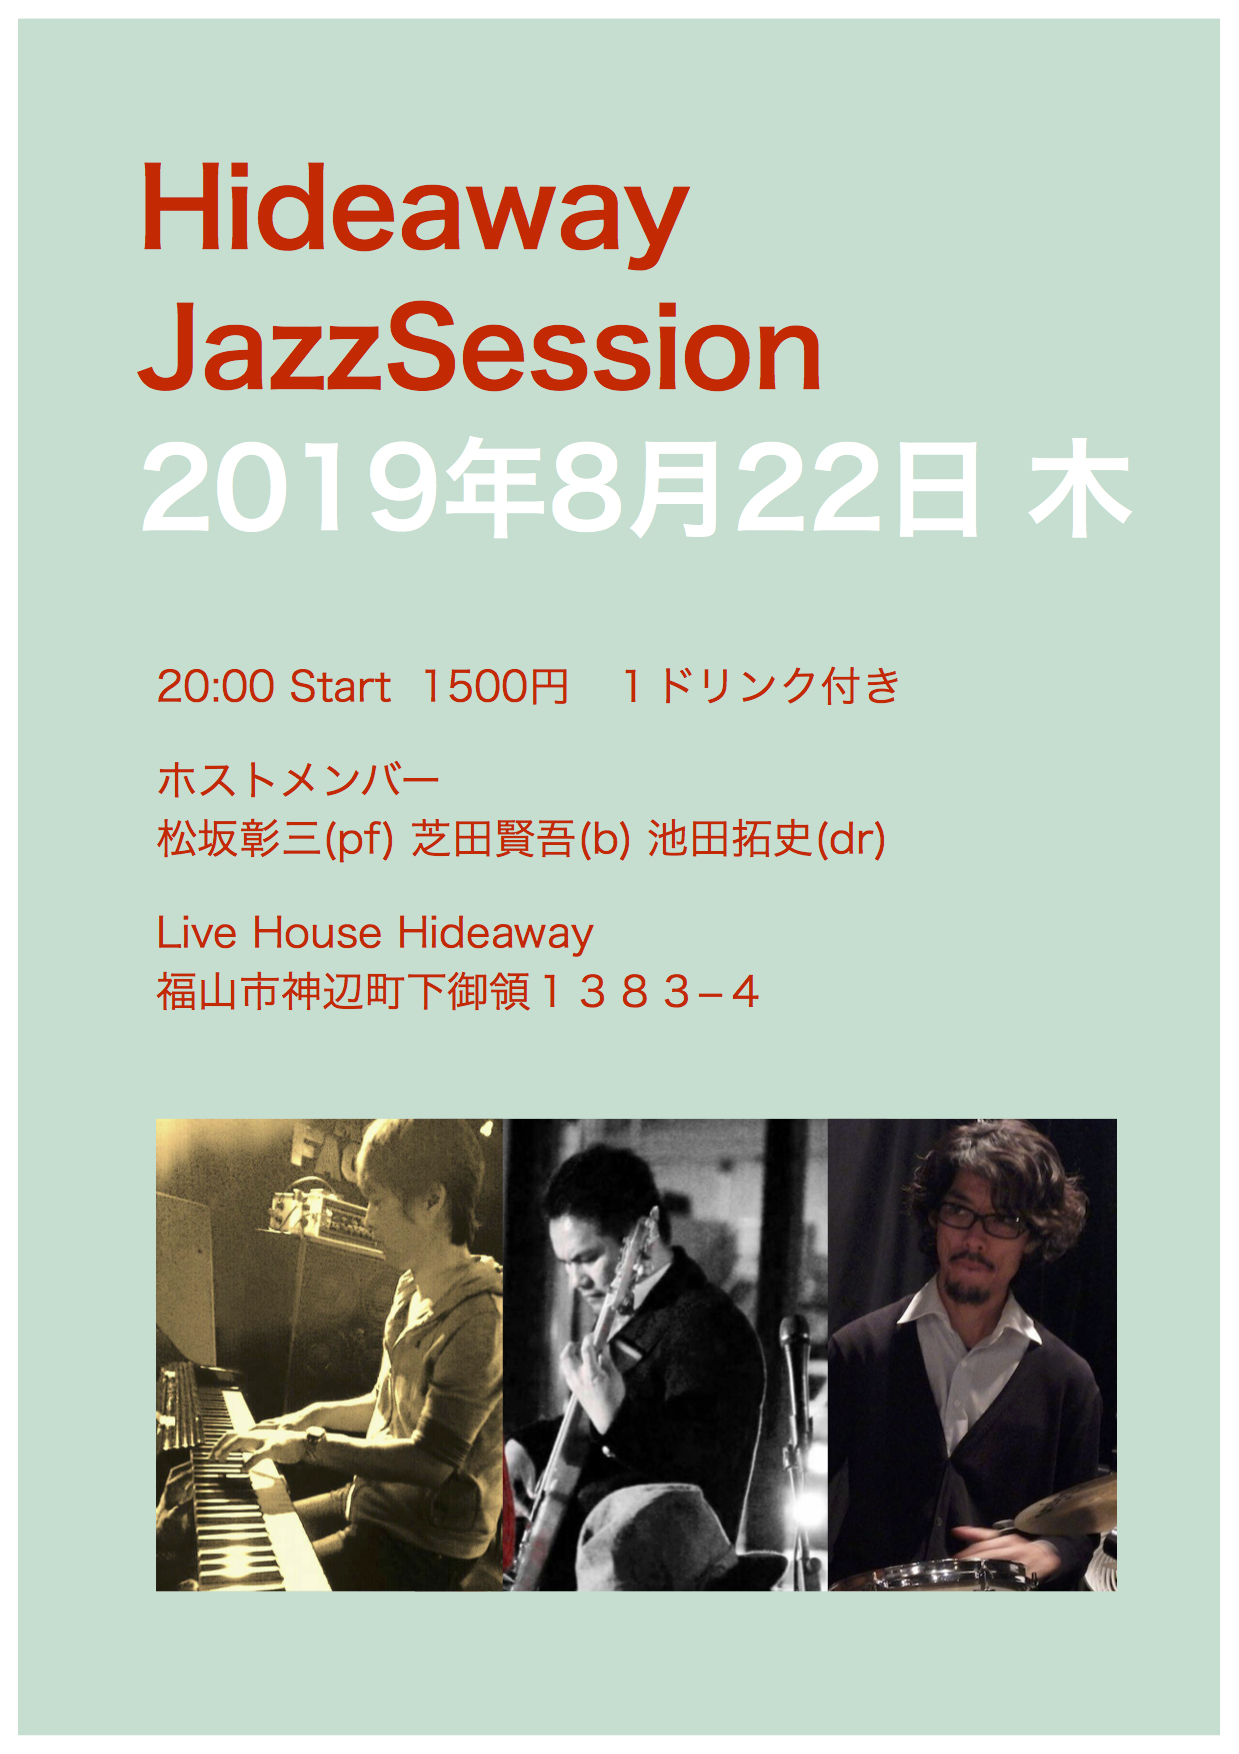 newsession20190822.jpg